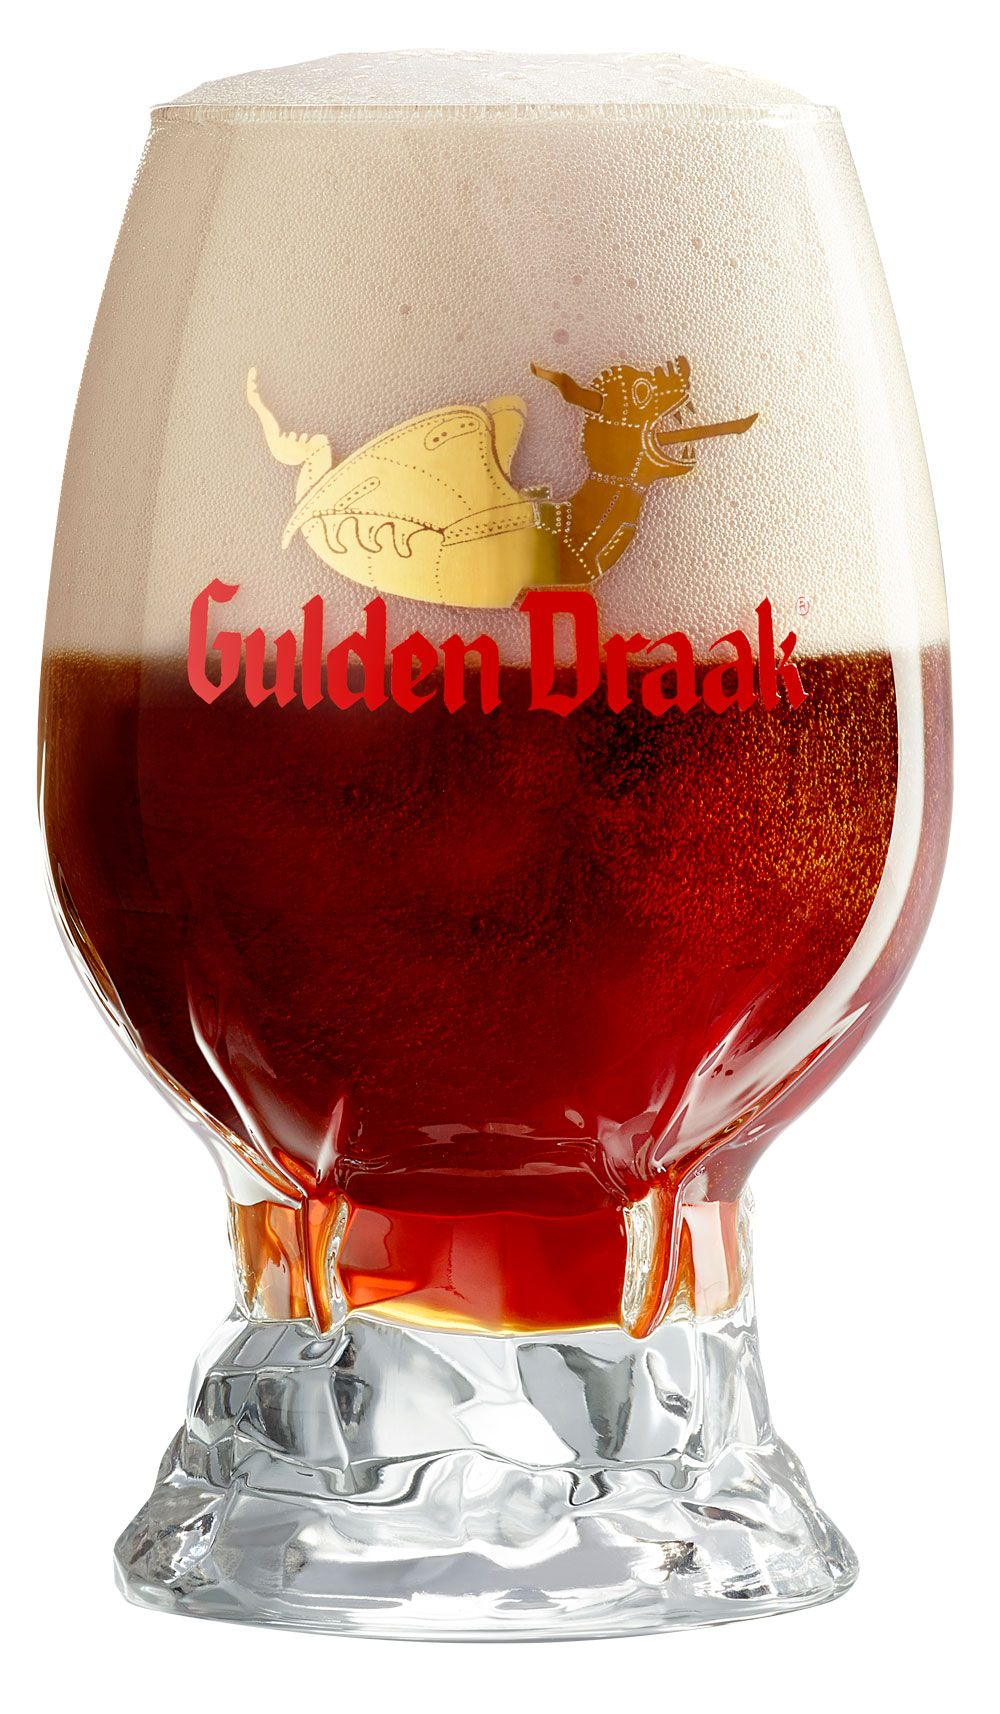 The New Gulden Draak Dragon Egg Glass Beer Glasses Beer Tasting Glassware